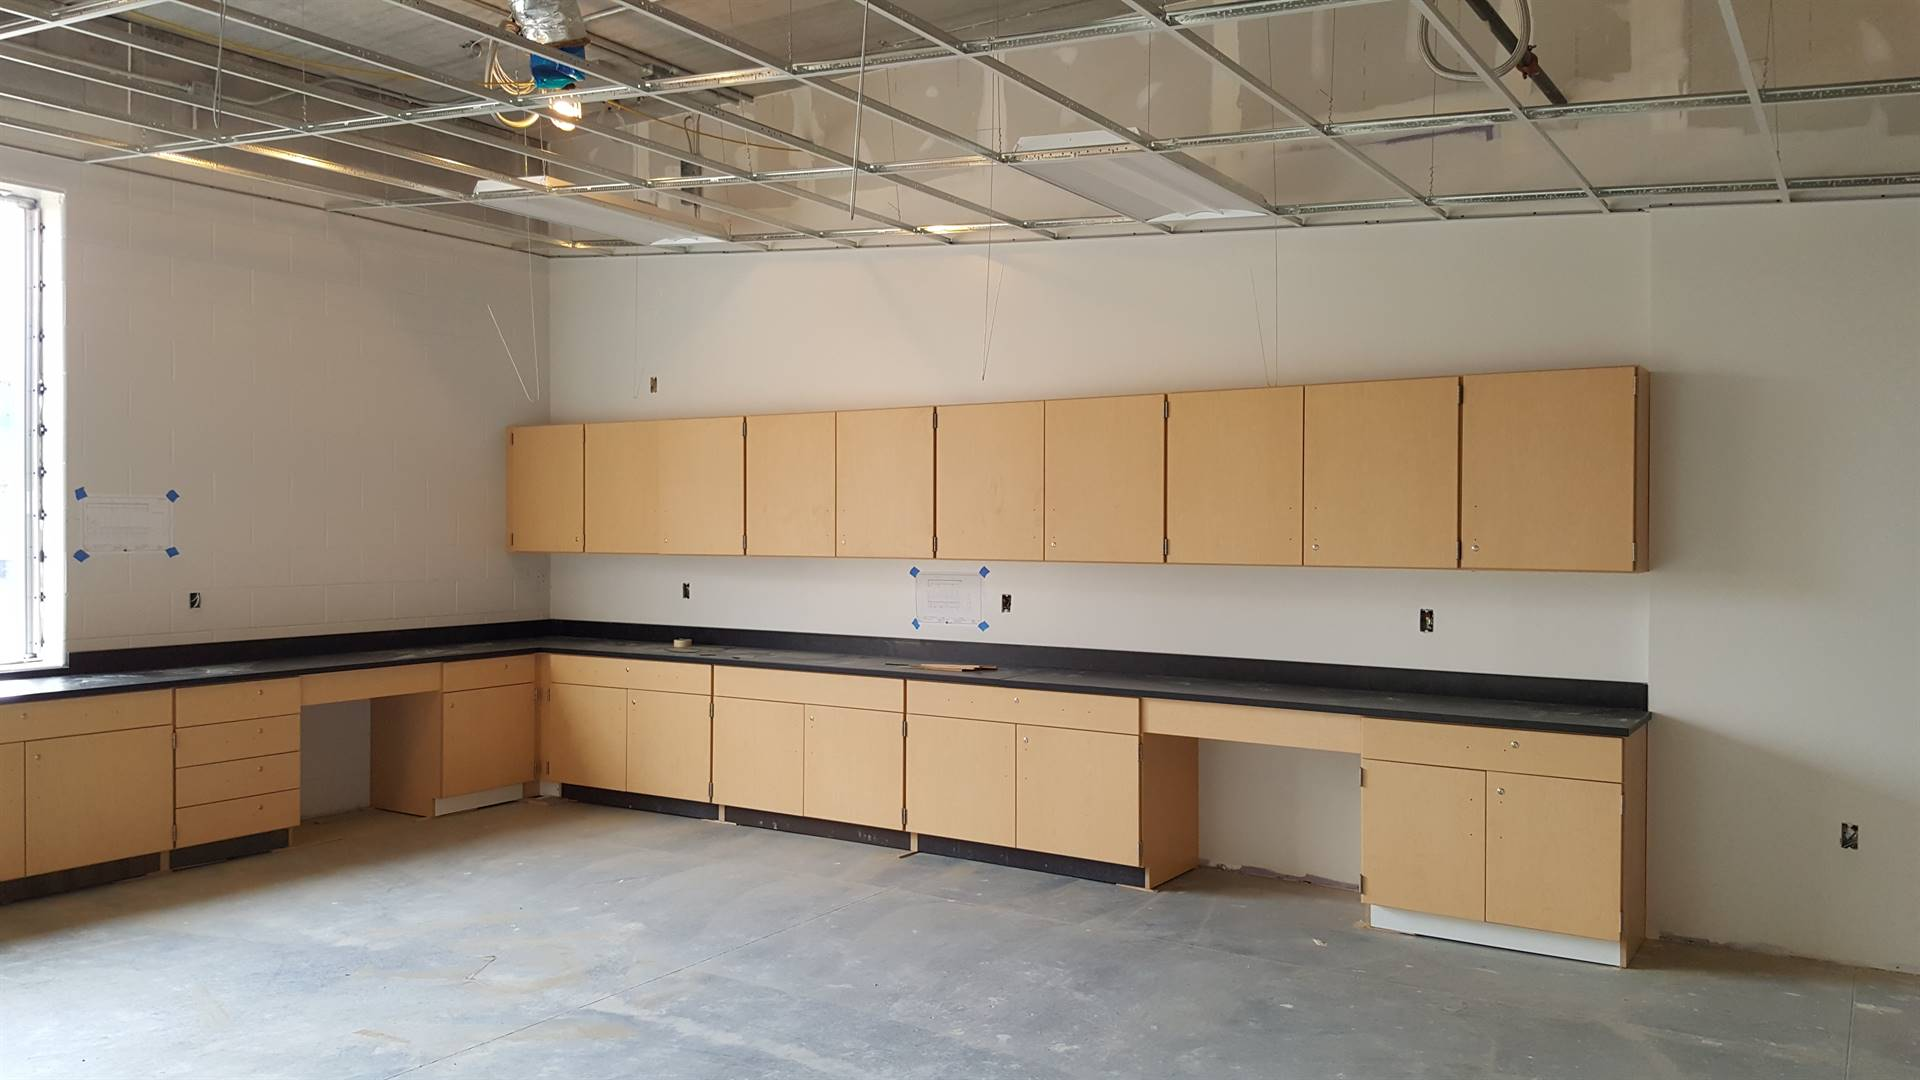 Chemistry lab cabinetry